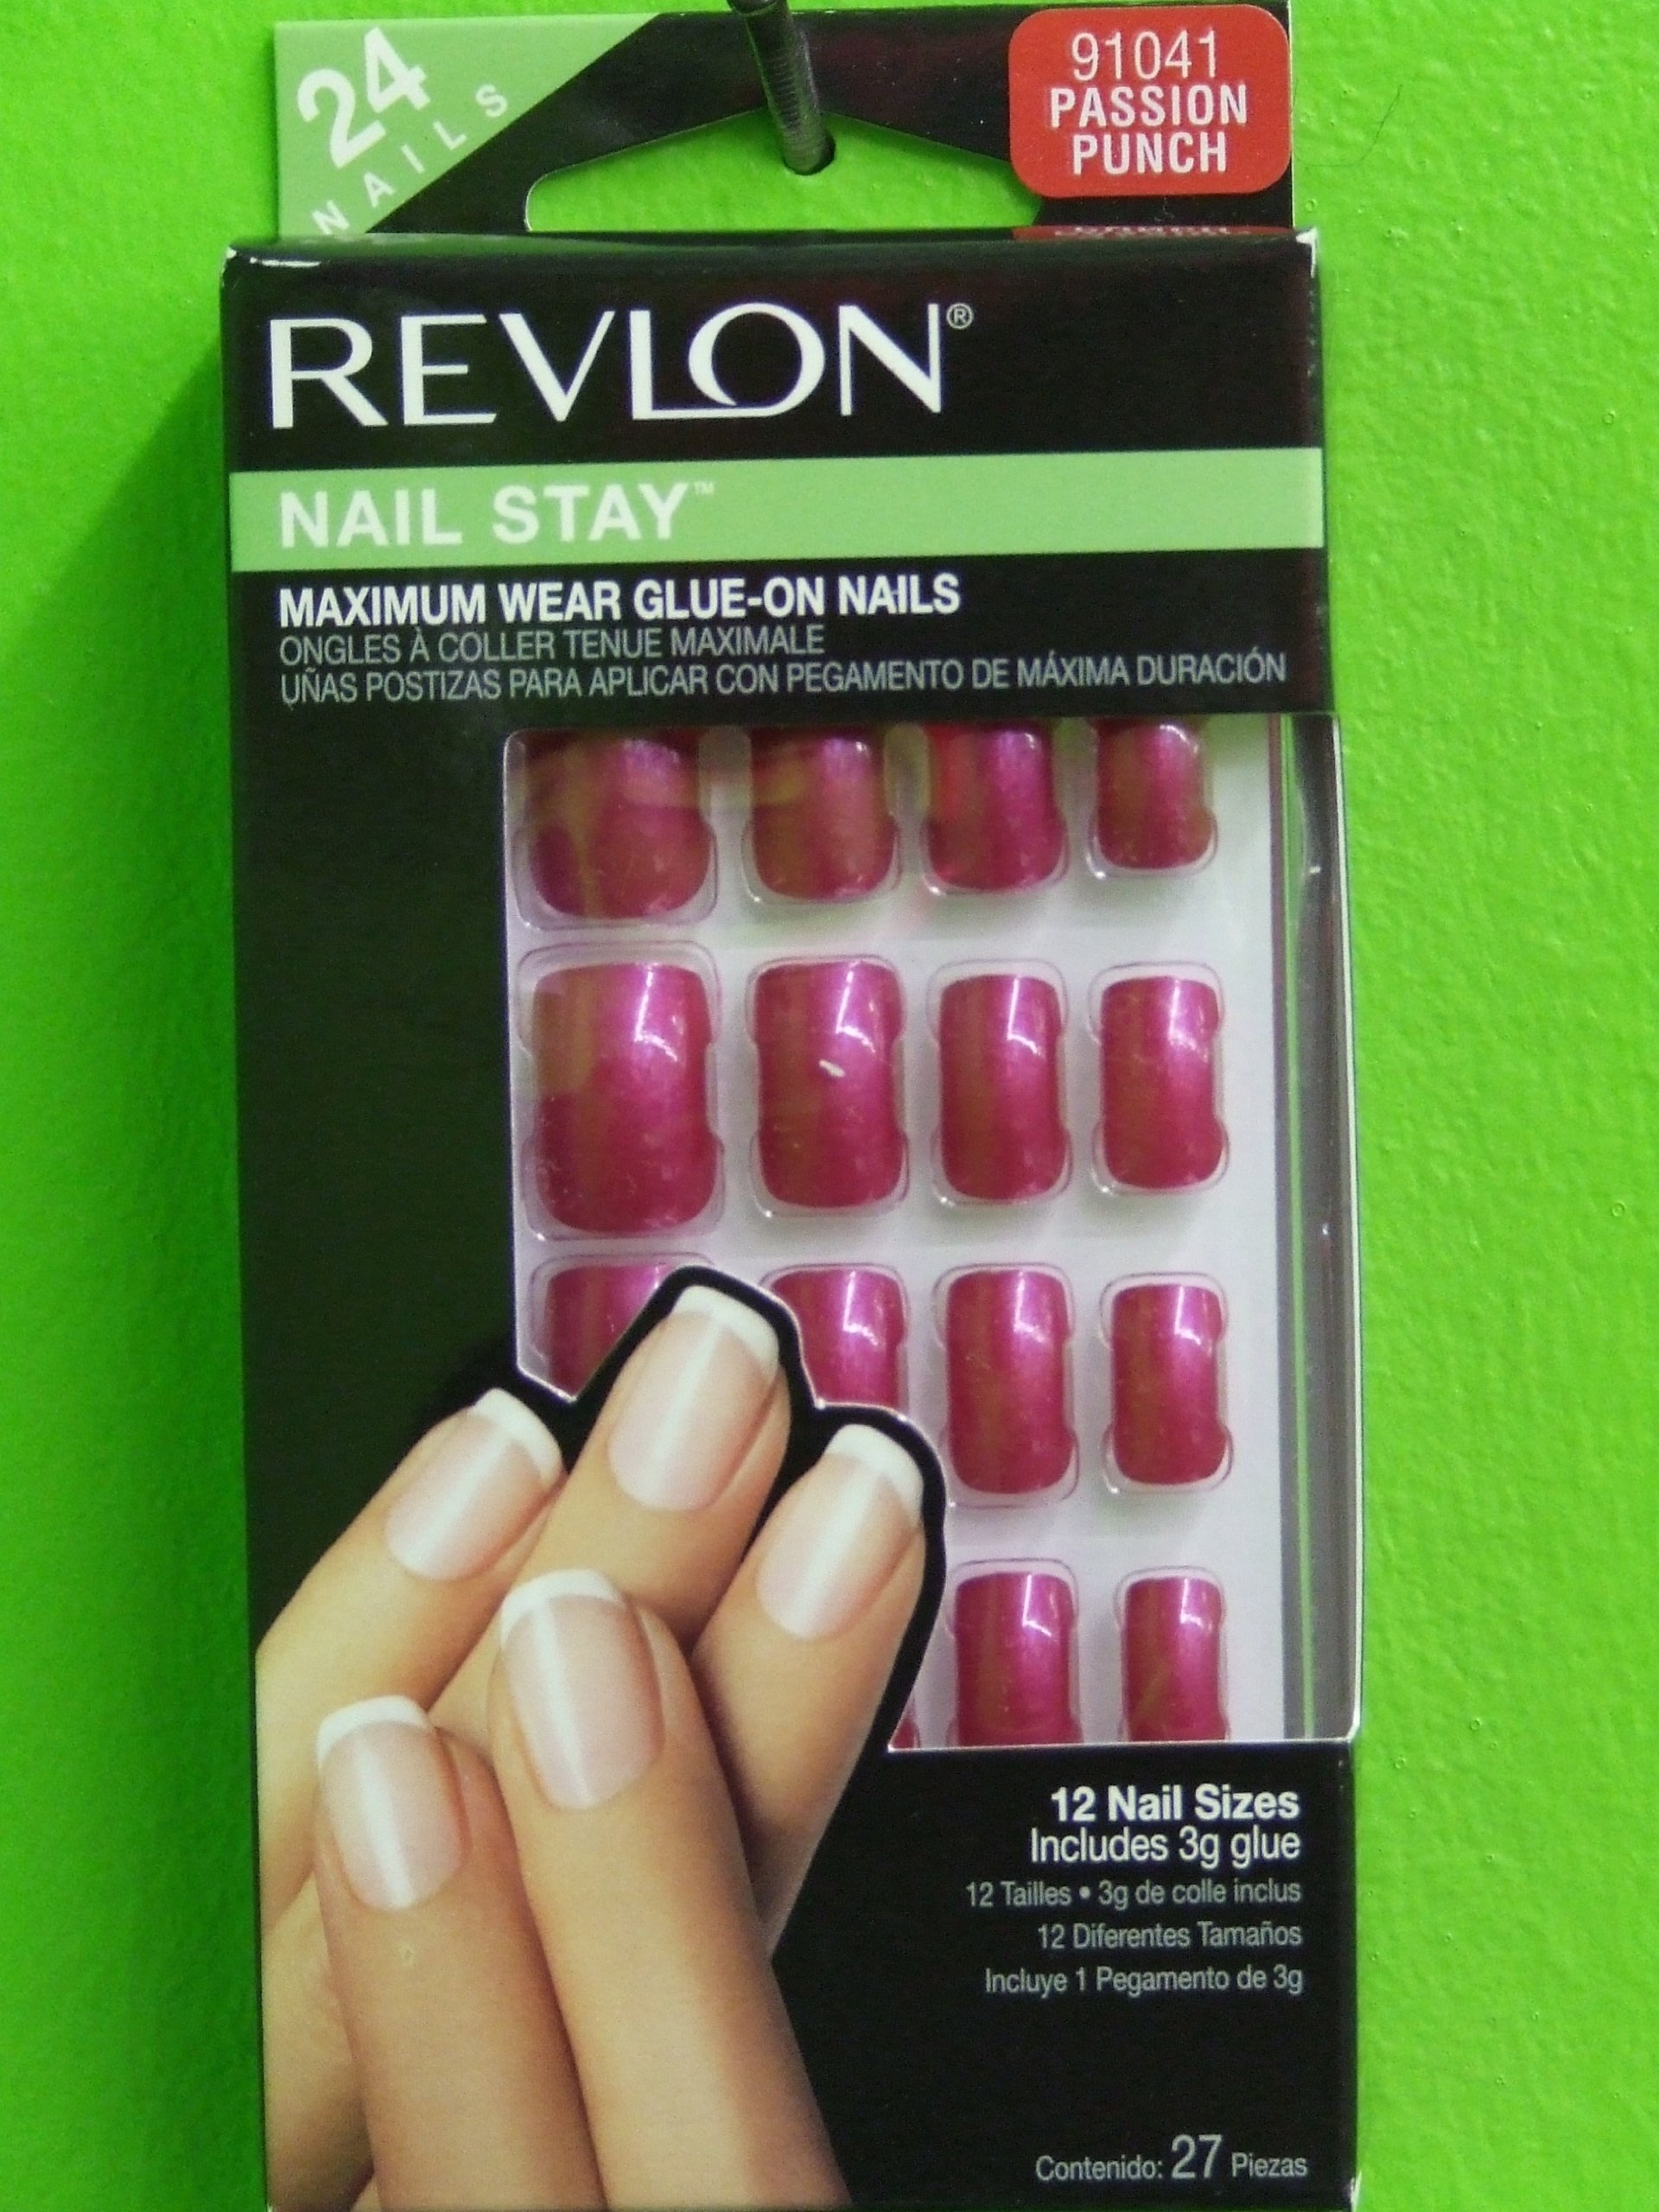 Revlon Color Allure Nails, Medium Length, Passion Punch 91041, 24 Ct.